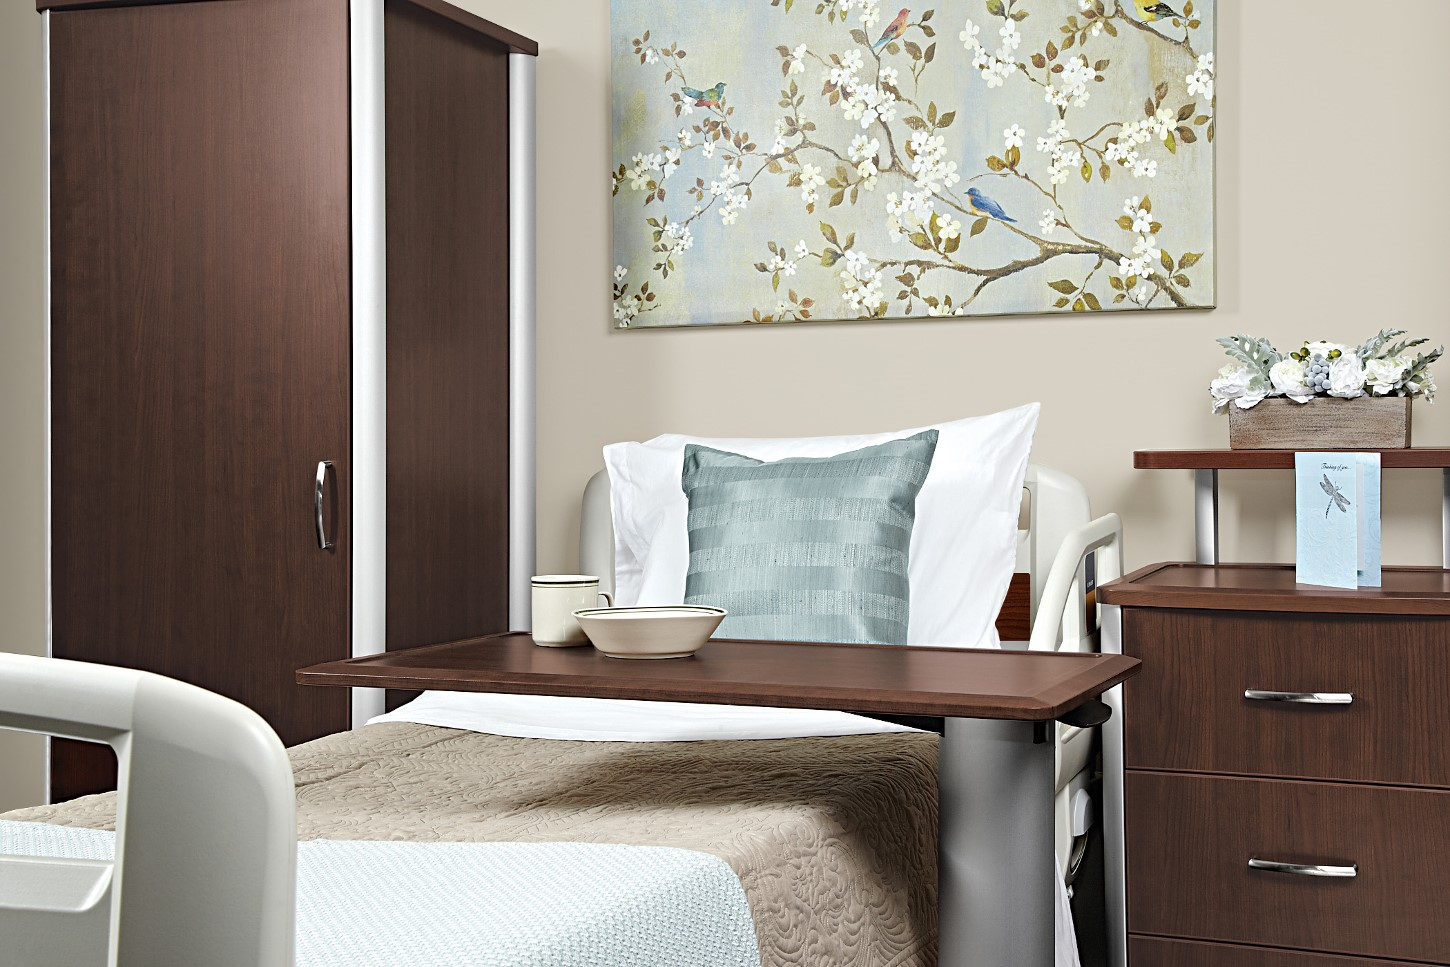 <b><font color=blue>GIBRALTER PATIENT ROOM FURNITURE BY STANCE HEALTHCARE</font></b>